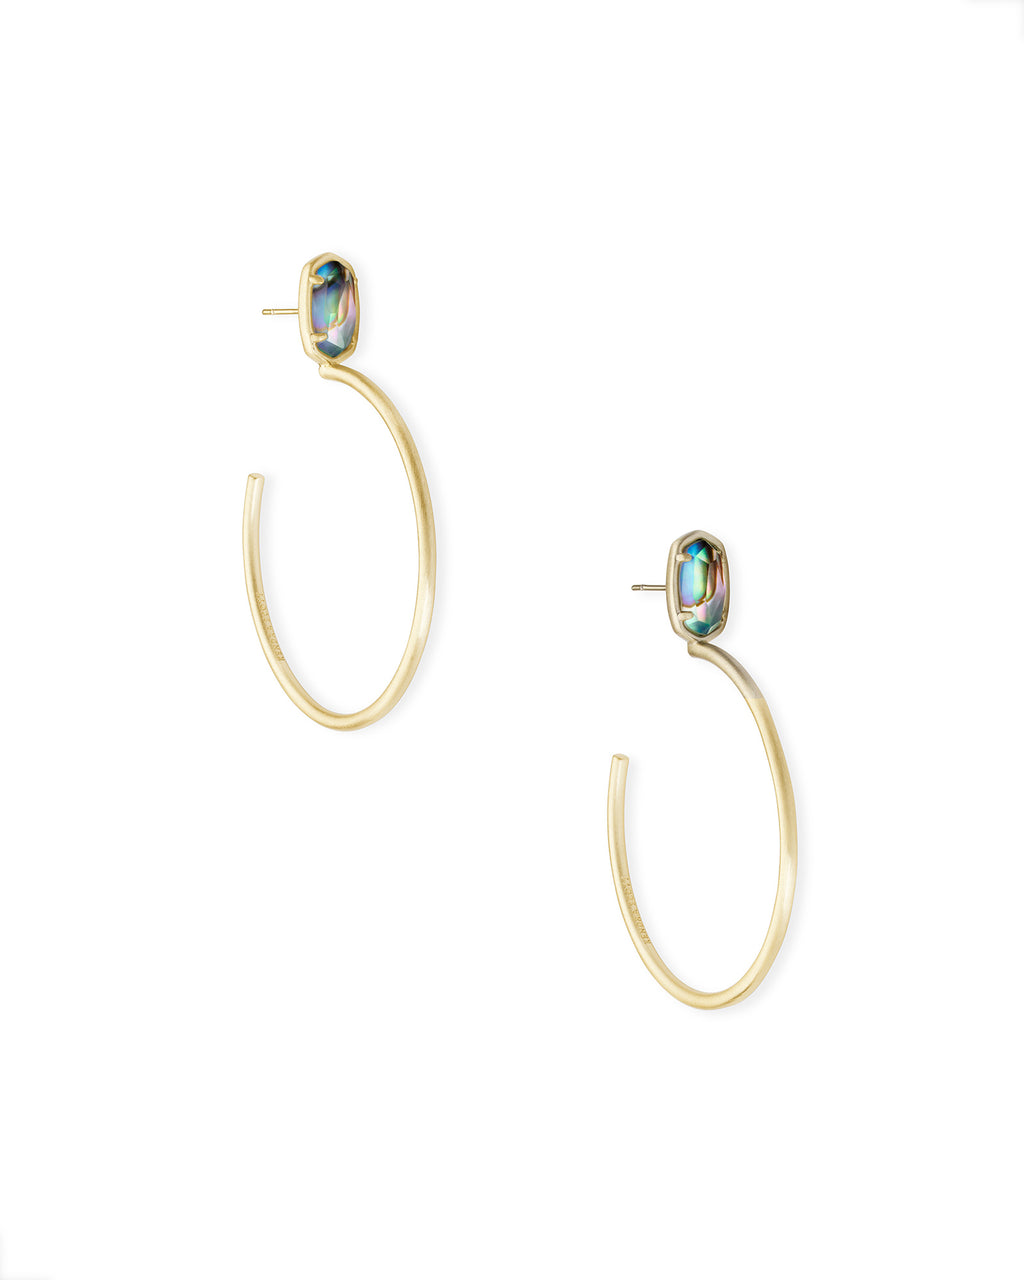 Kendra Scott Small Stone Pepper Earring - Gold/Nude Abalone